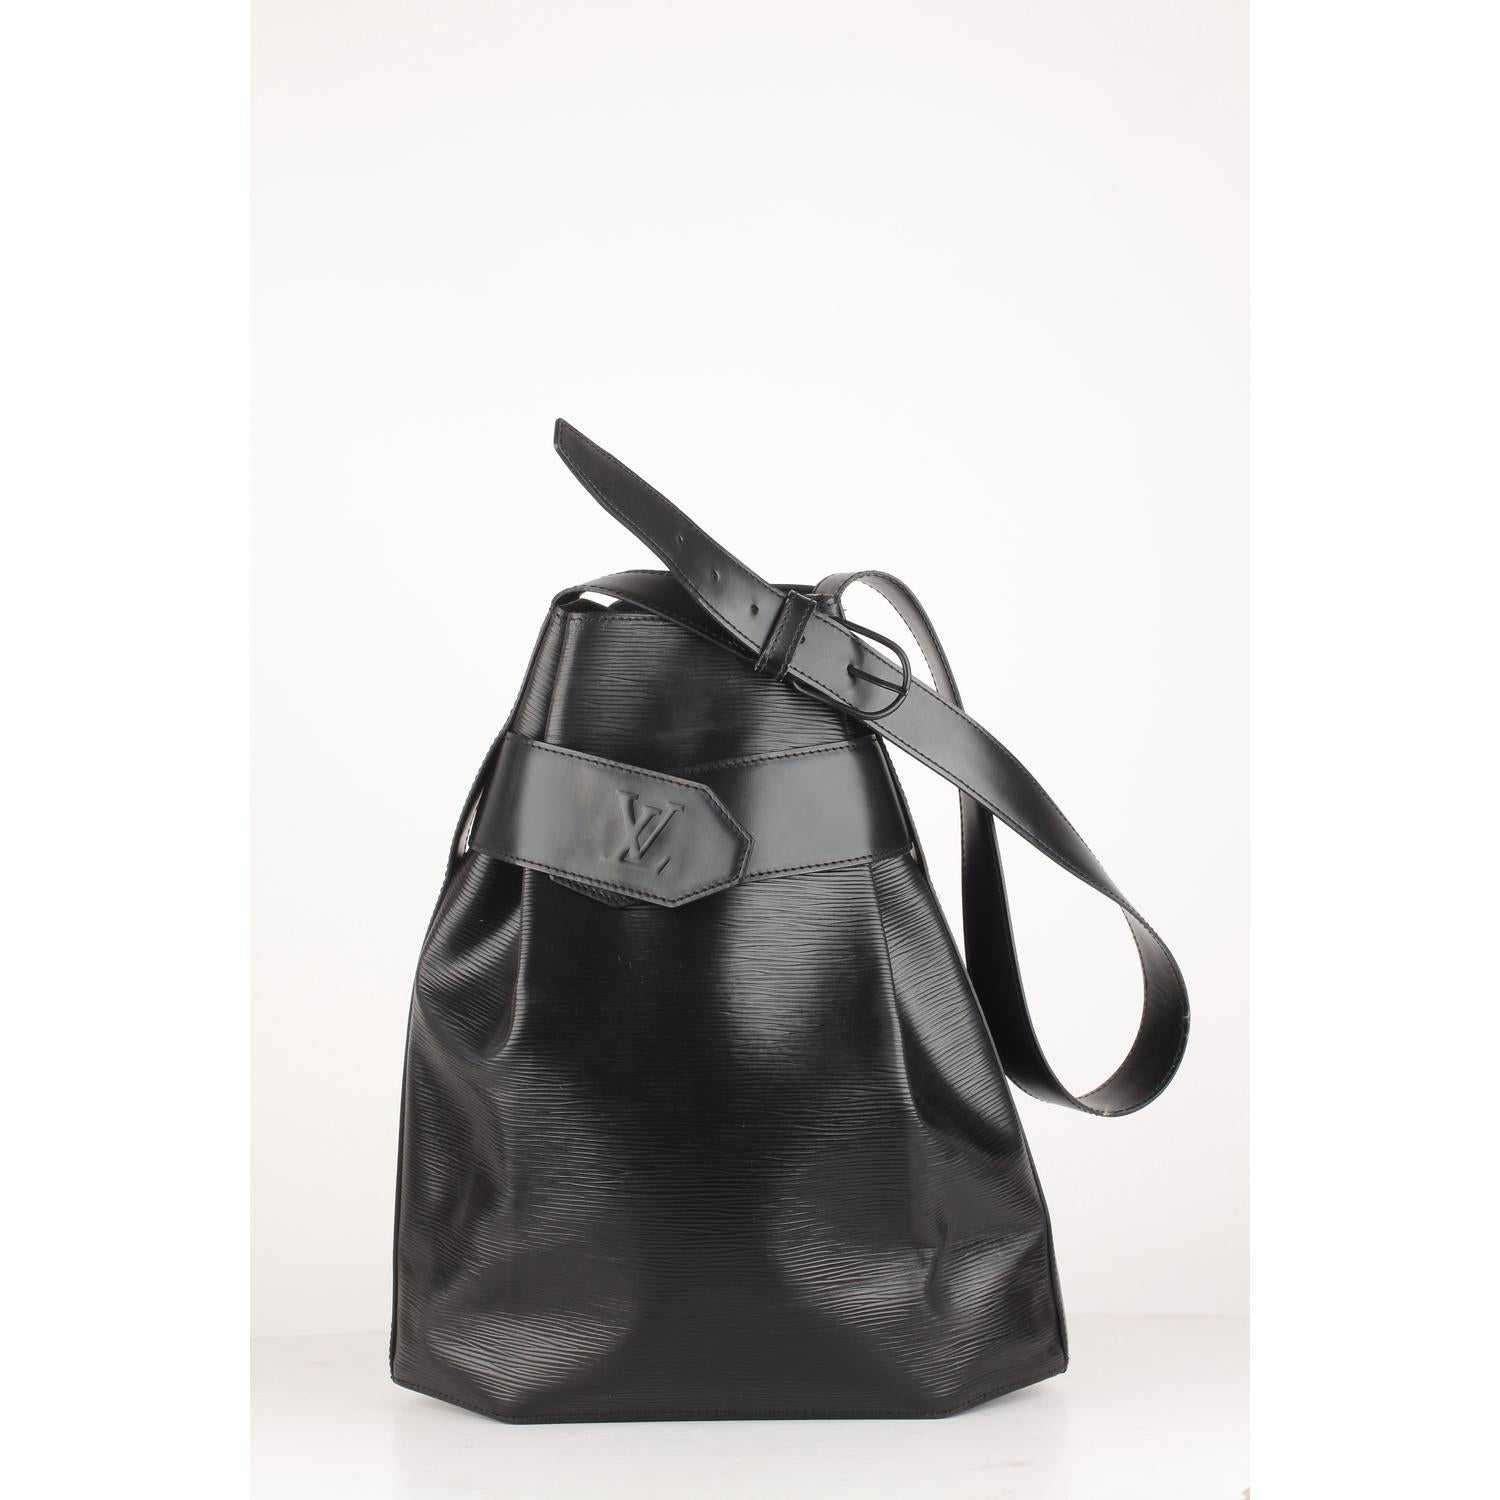 2c8691442175 Louis Vuitton Vintage Black Epi Leather Sac d Epaule Bucket Shoulder Bag  For Sale at 1stdibs